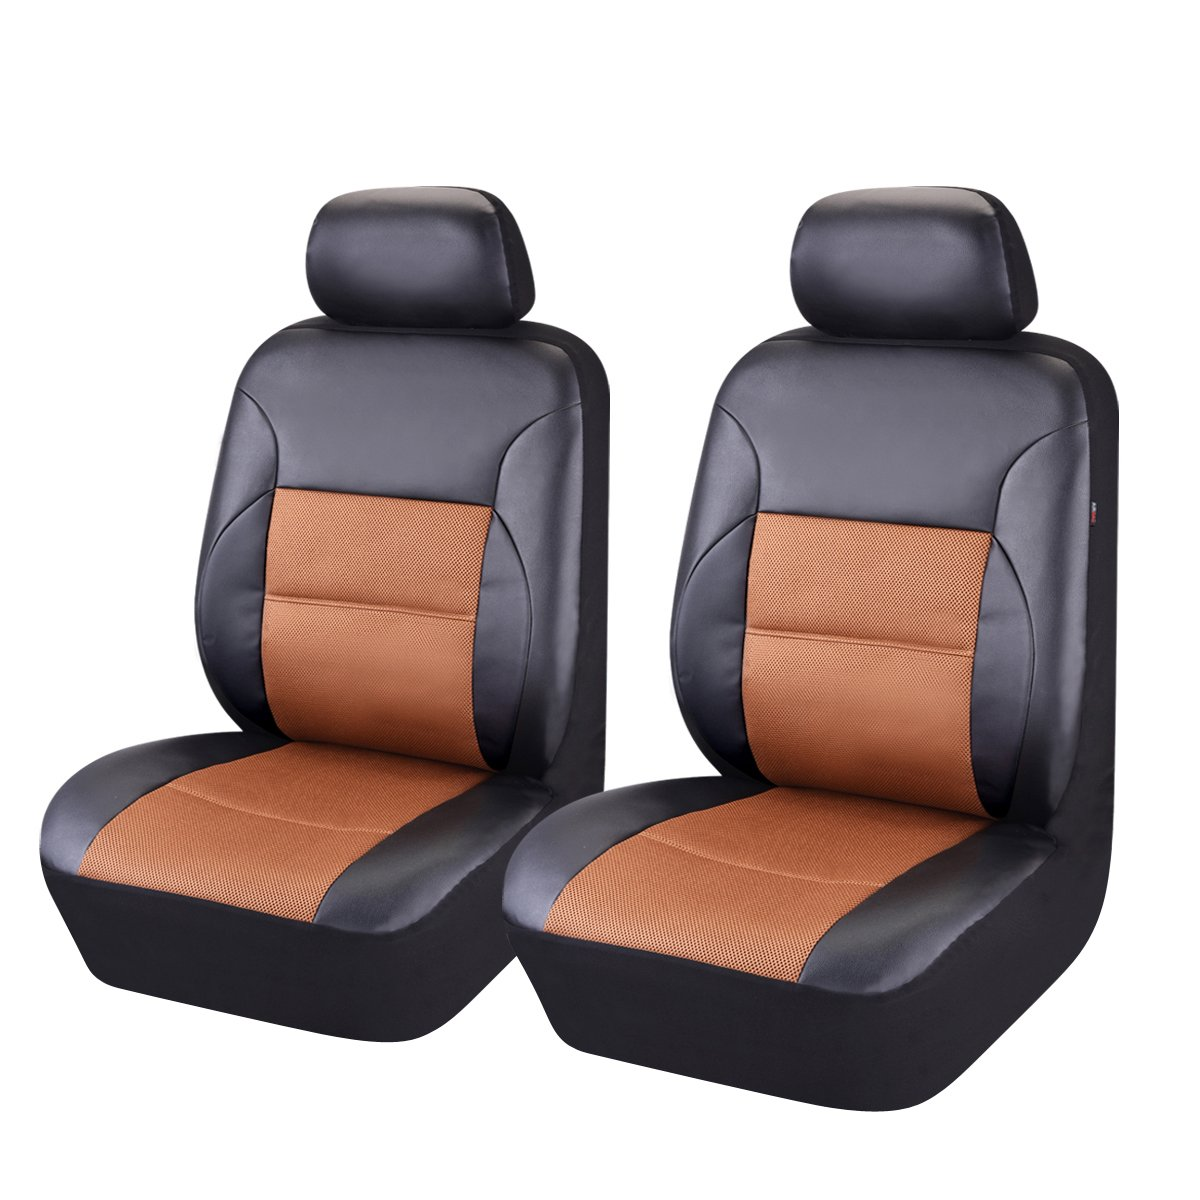 CAR PASS Black with Balck 6PCS Luxurous Leather Universal Two Front car seat Covers Set